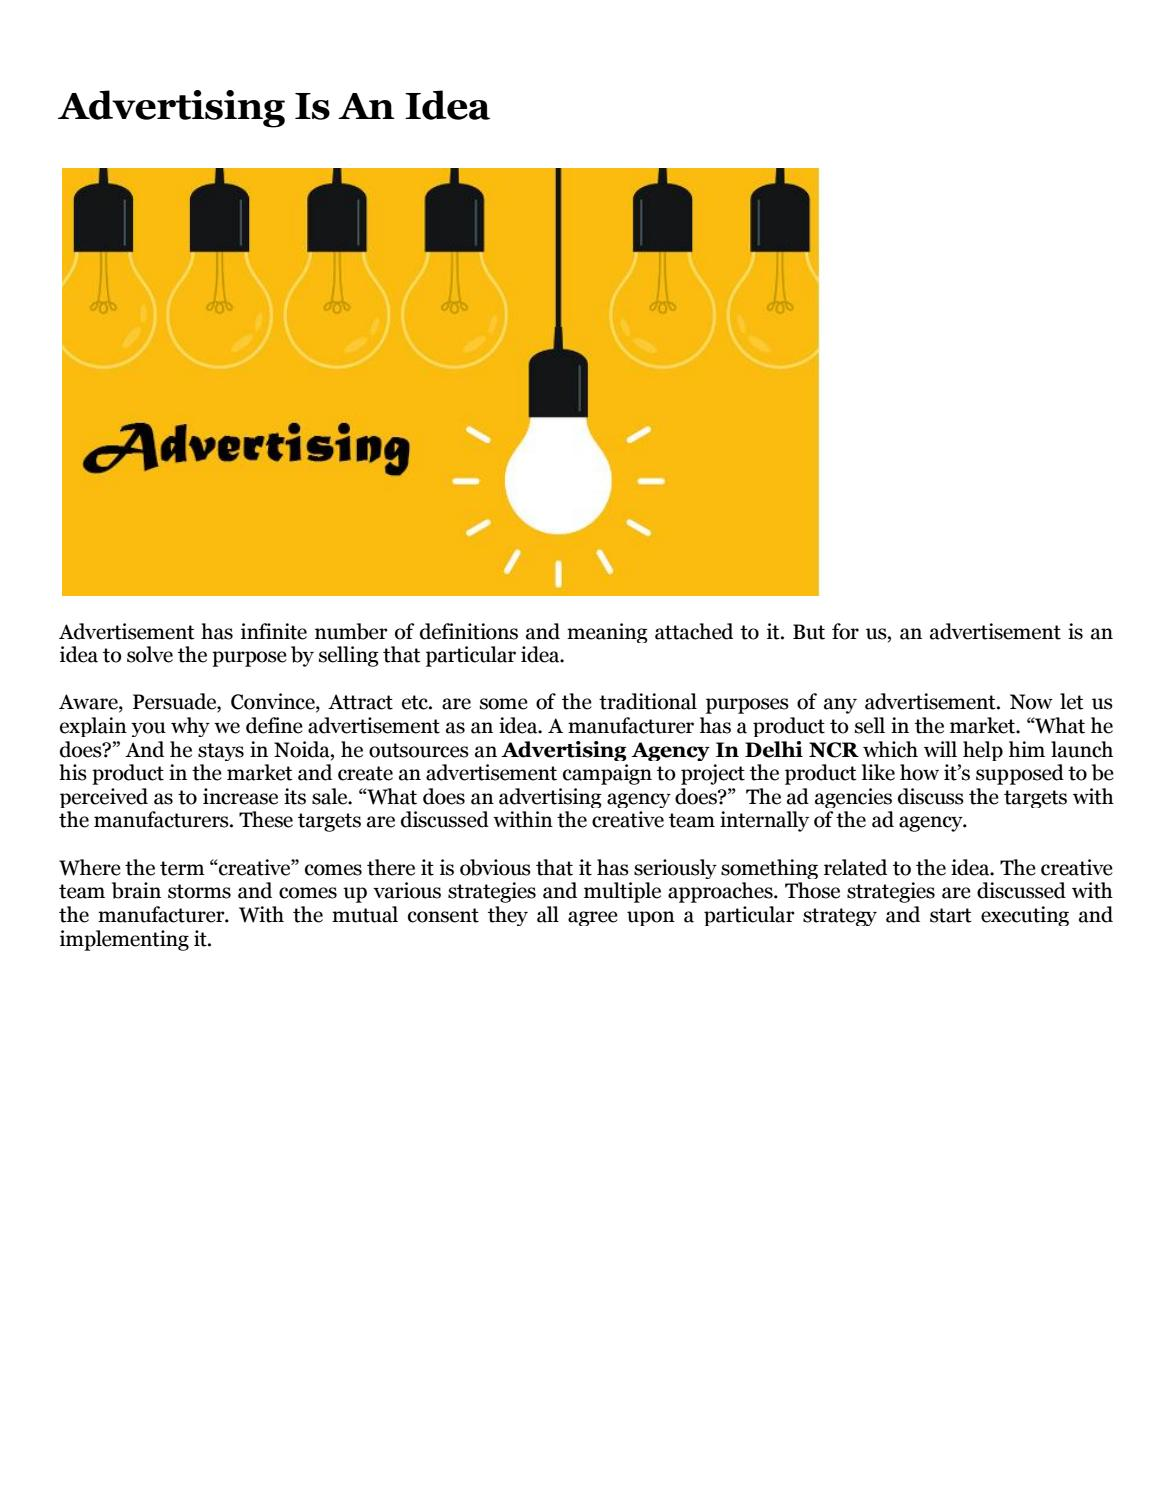 Advertising Is An Idea by Brand Wand - issuu